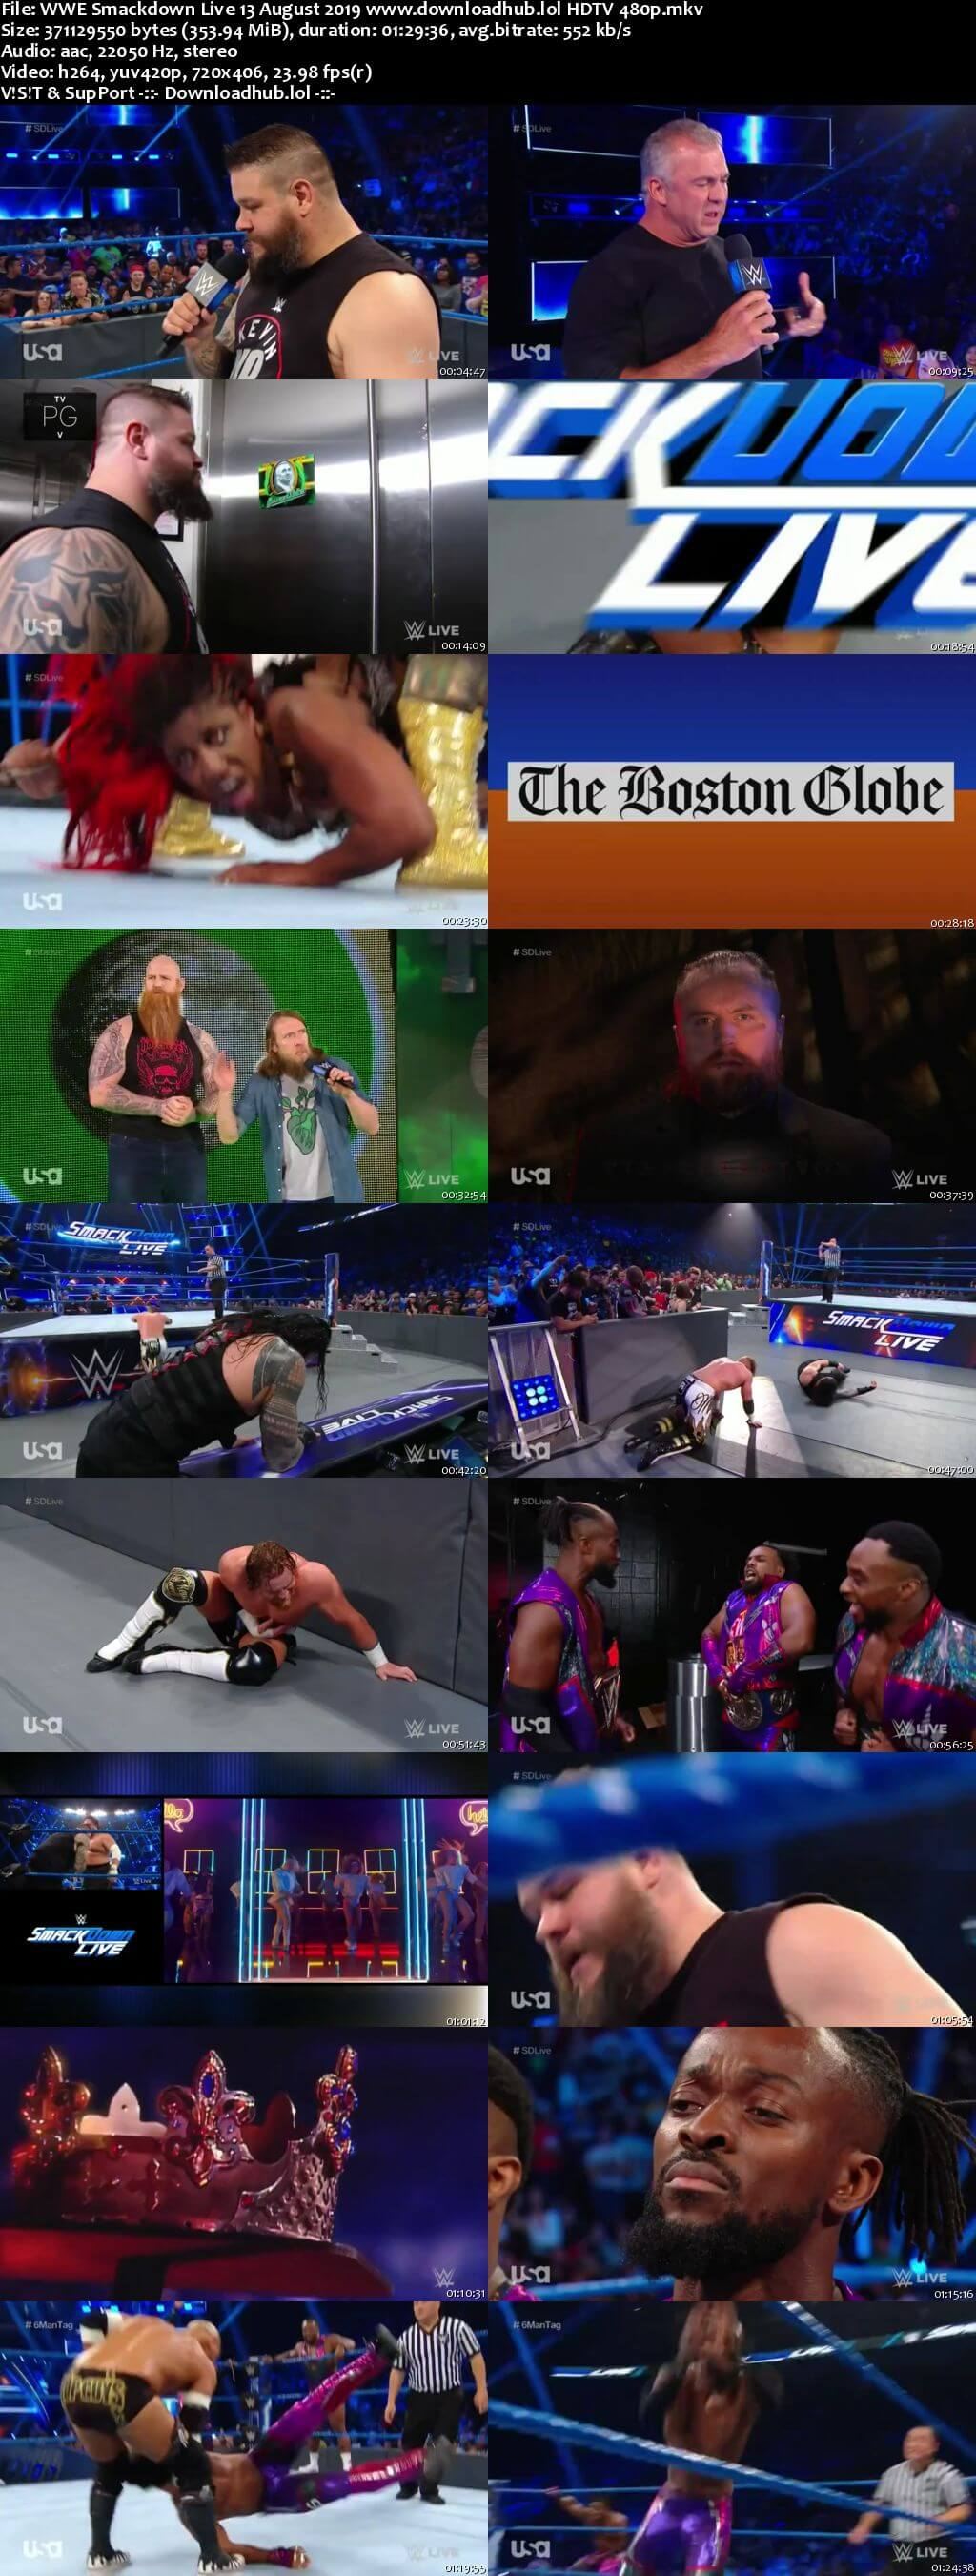 WWE Smackdown Live 13th August 2019 300MB HDTV 480p